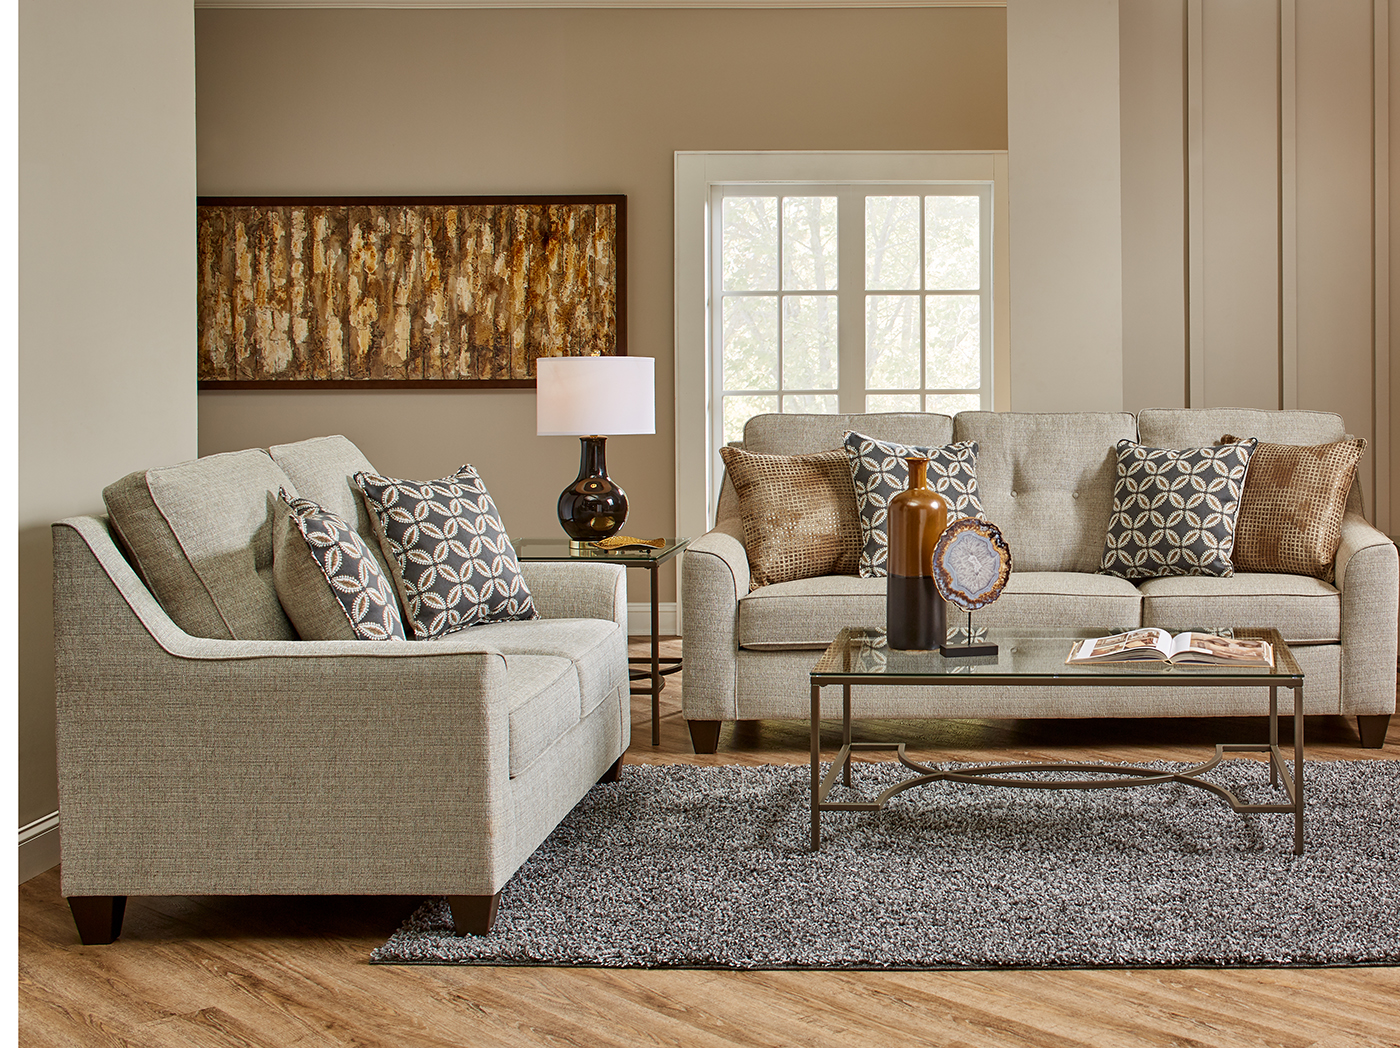 Buy the Gifford sofa, get the loveseat FREE!!